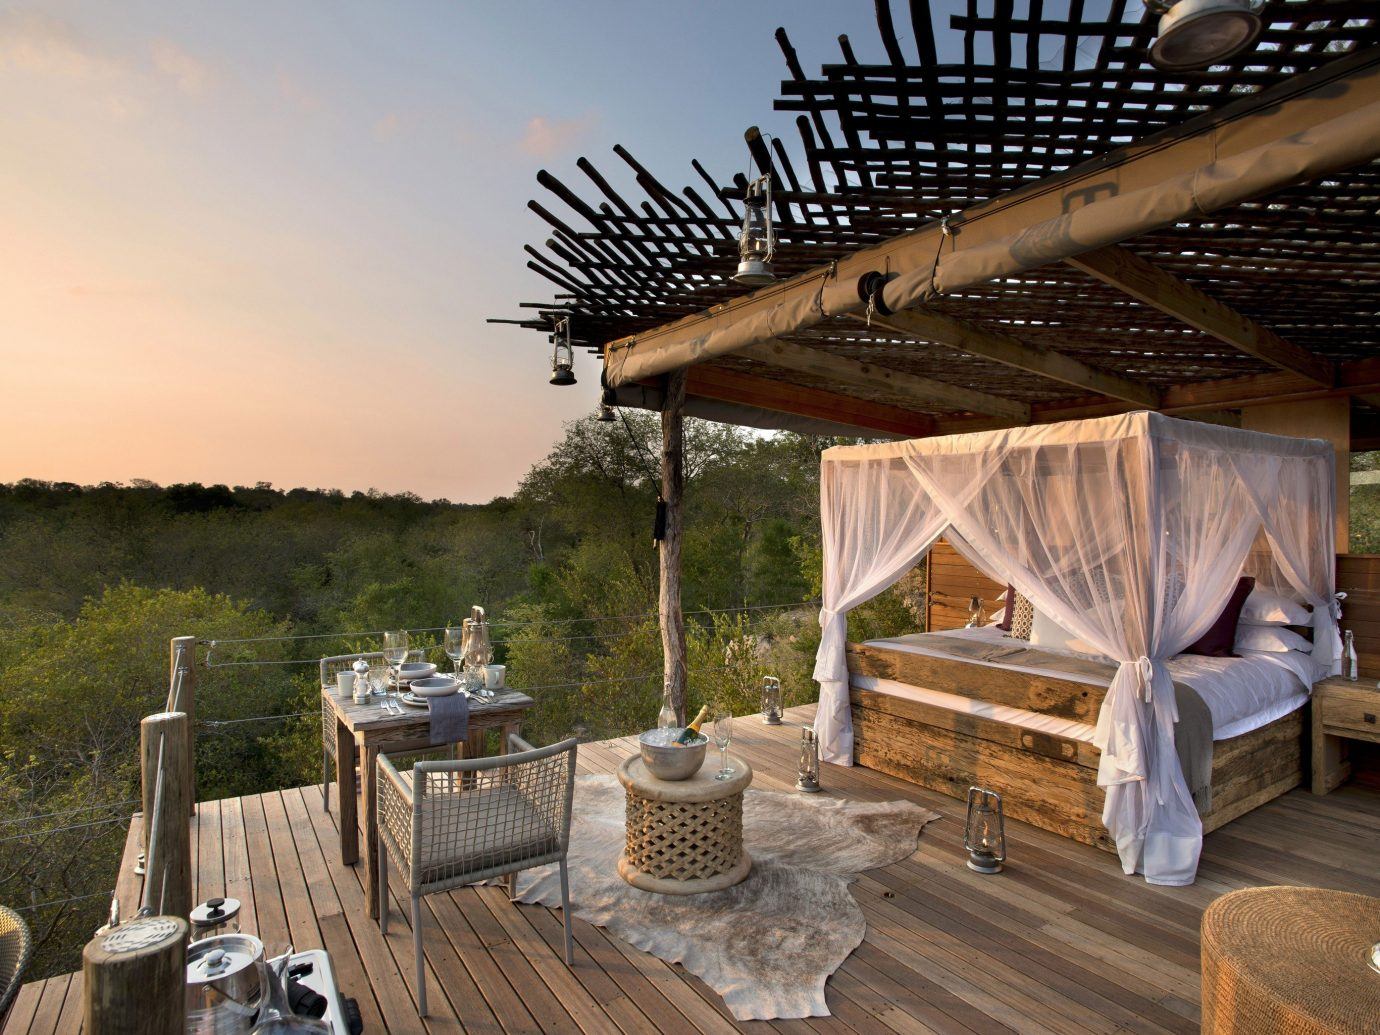 Hotels property estate vacation outdoor structure home Villa backyard cottage Resort area roof furniture stone